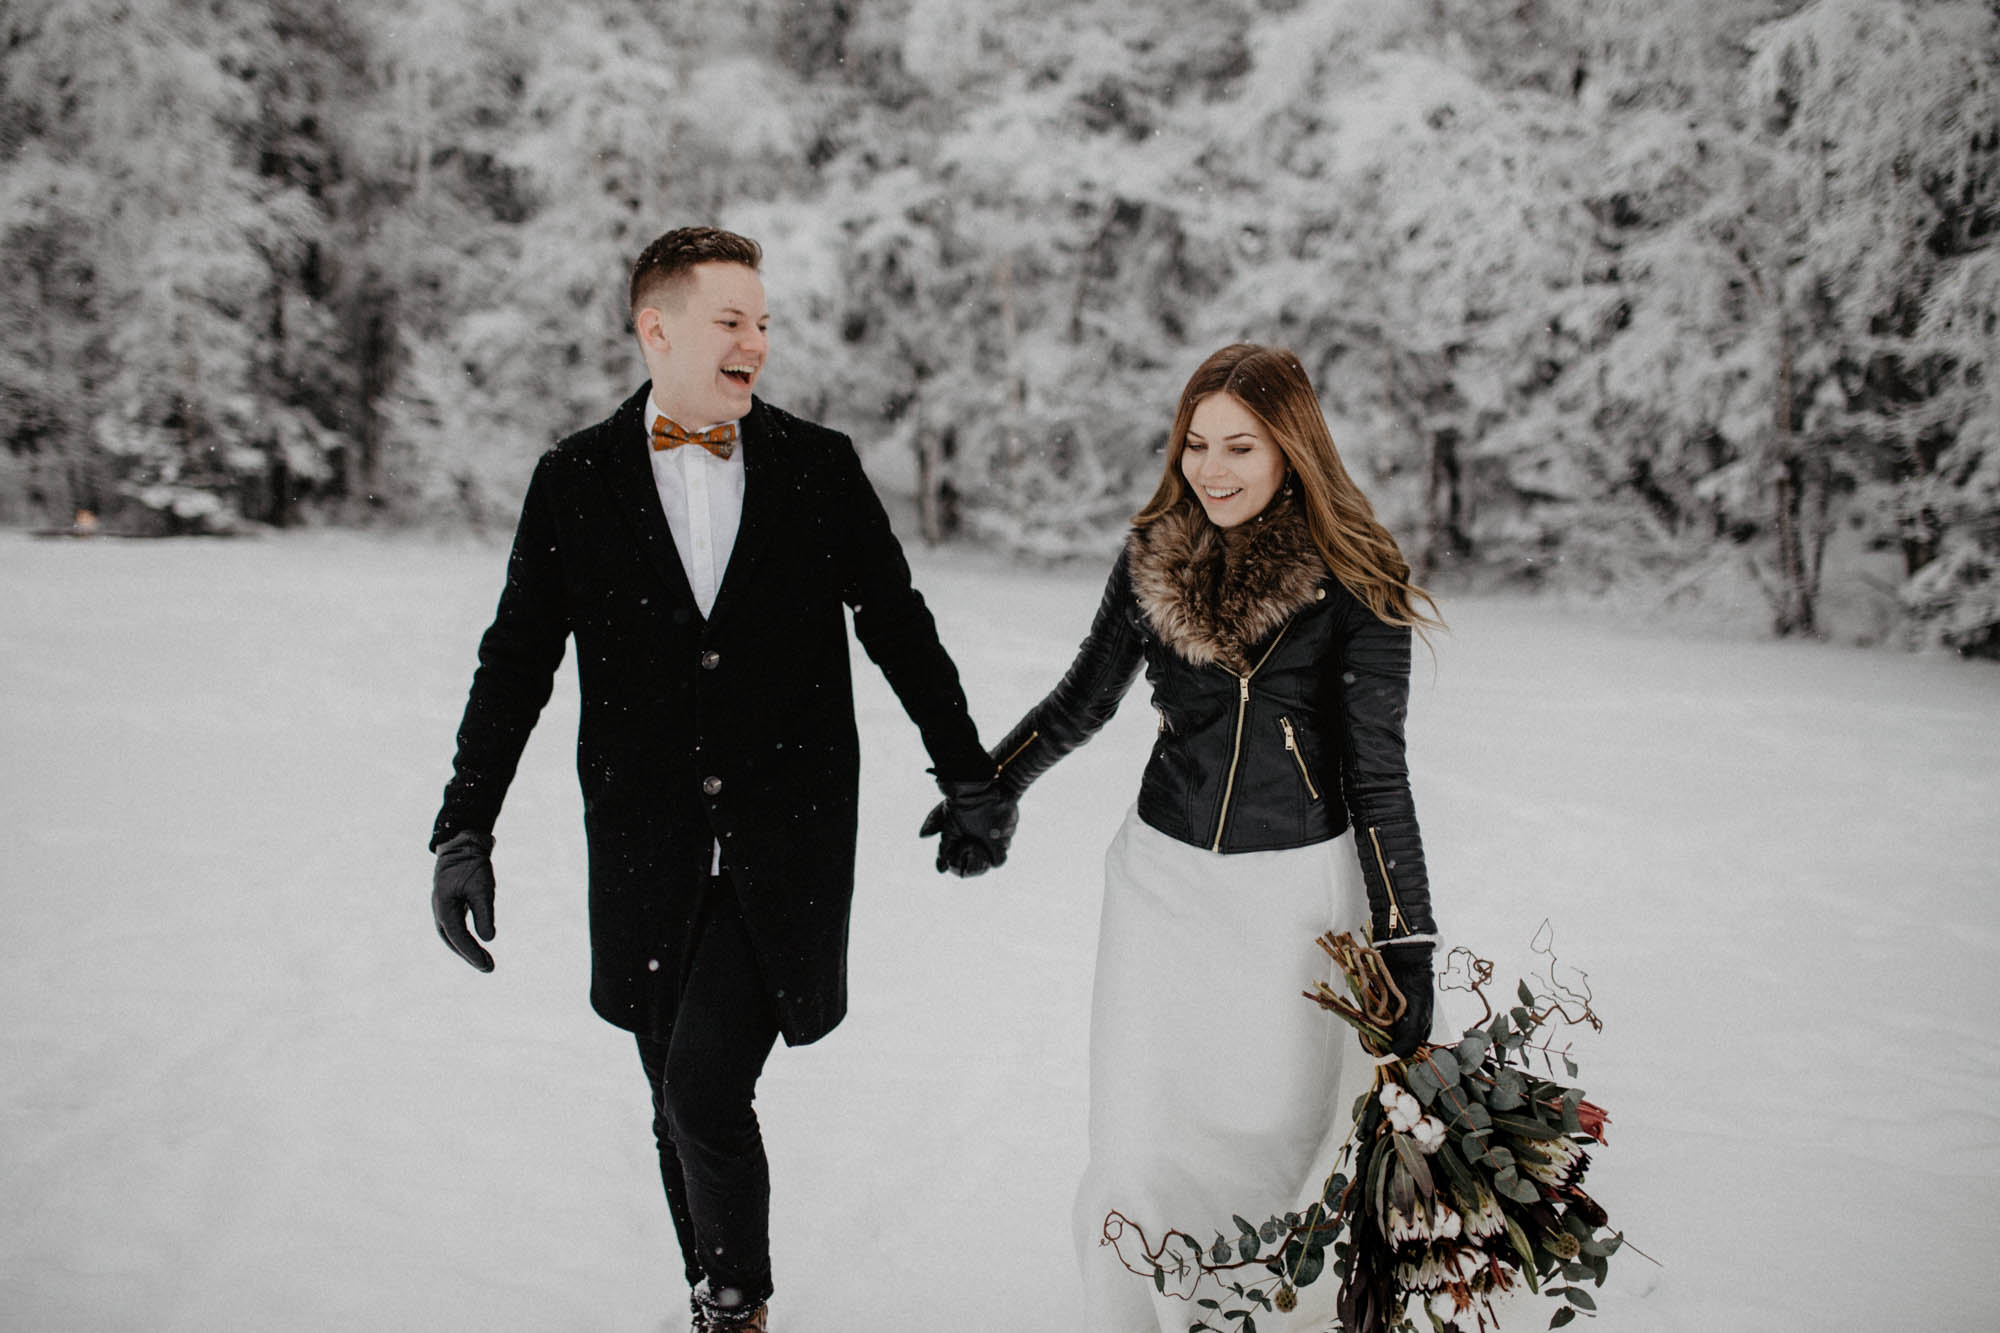 ashley_schulman_photography-winter_wedding_tampere-44.jpg